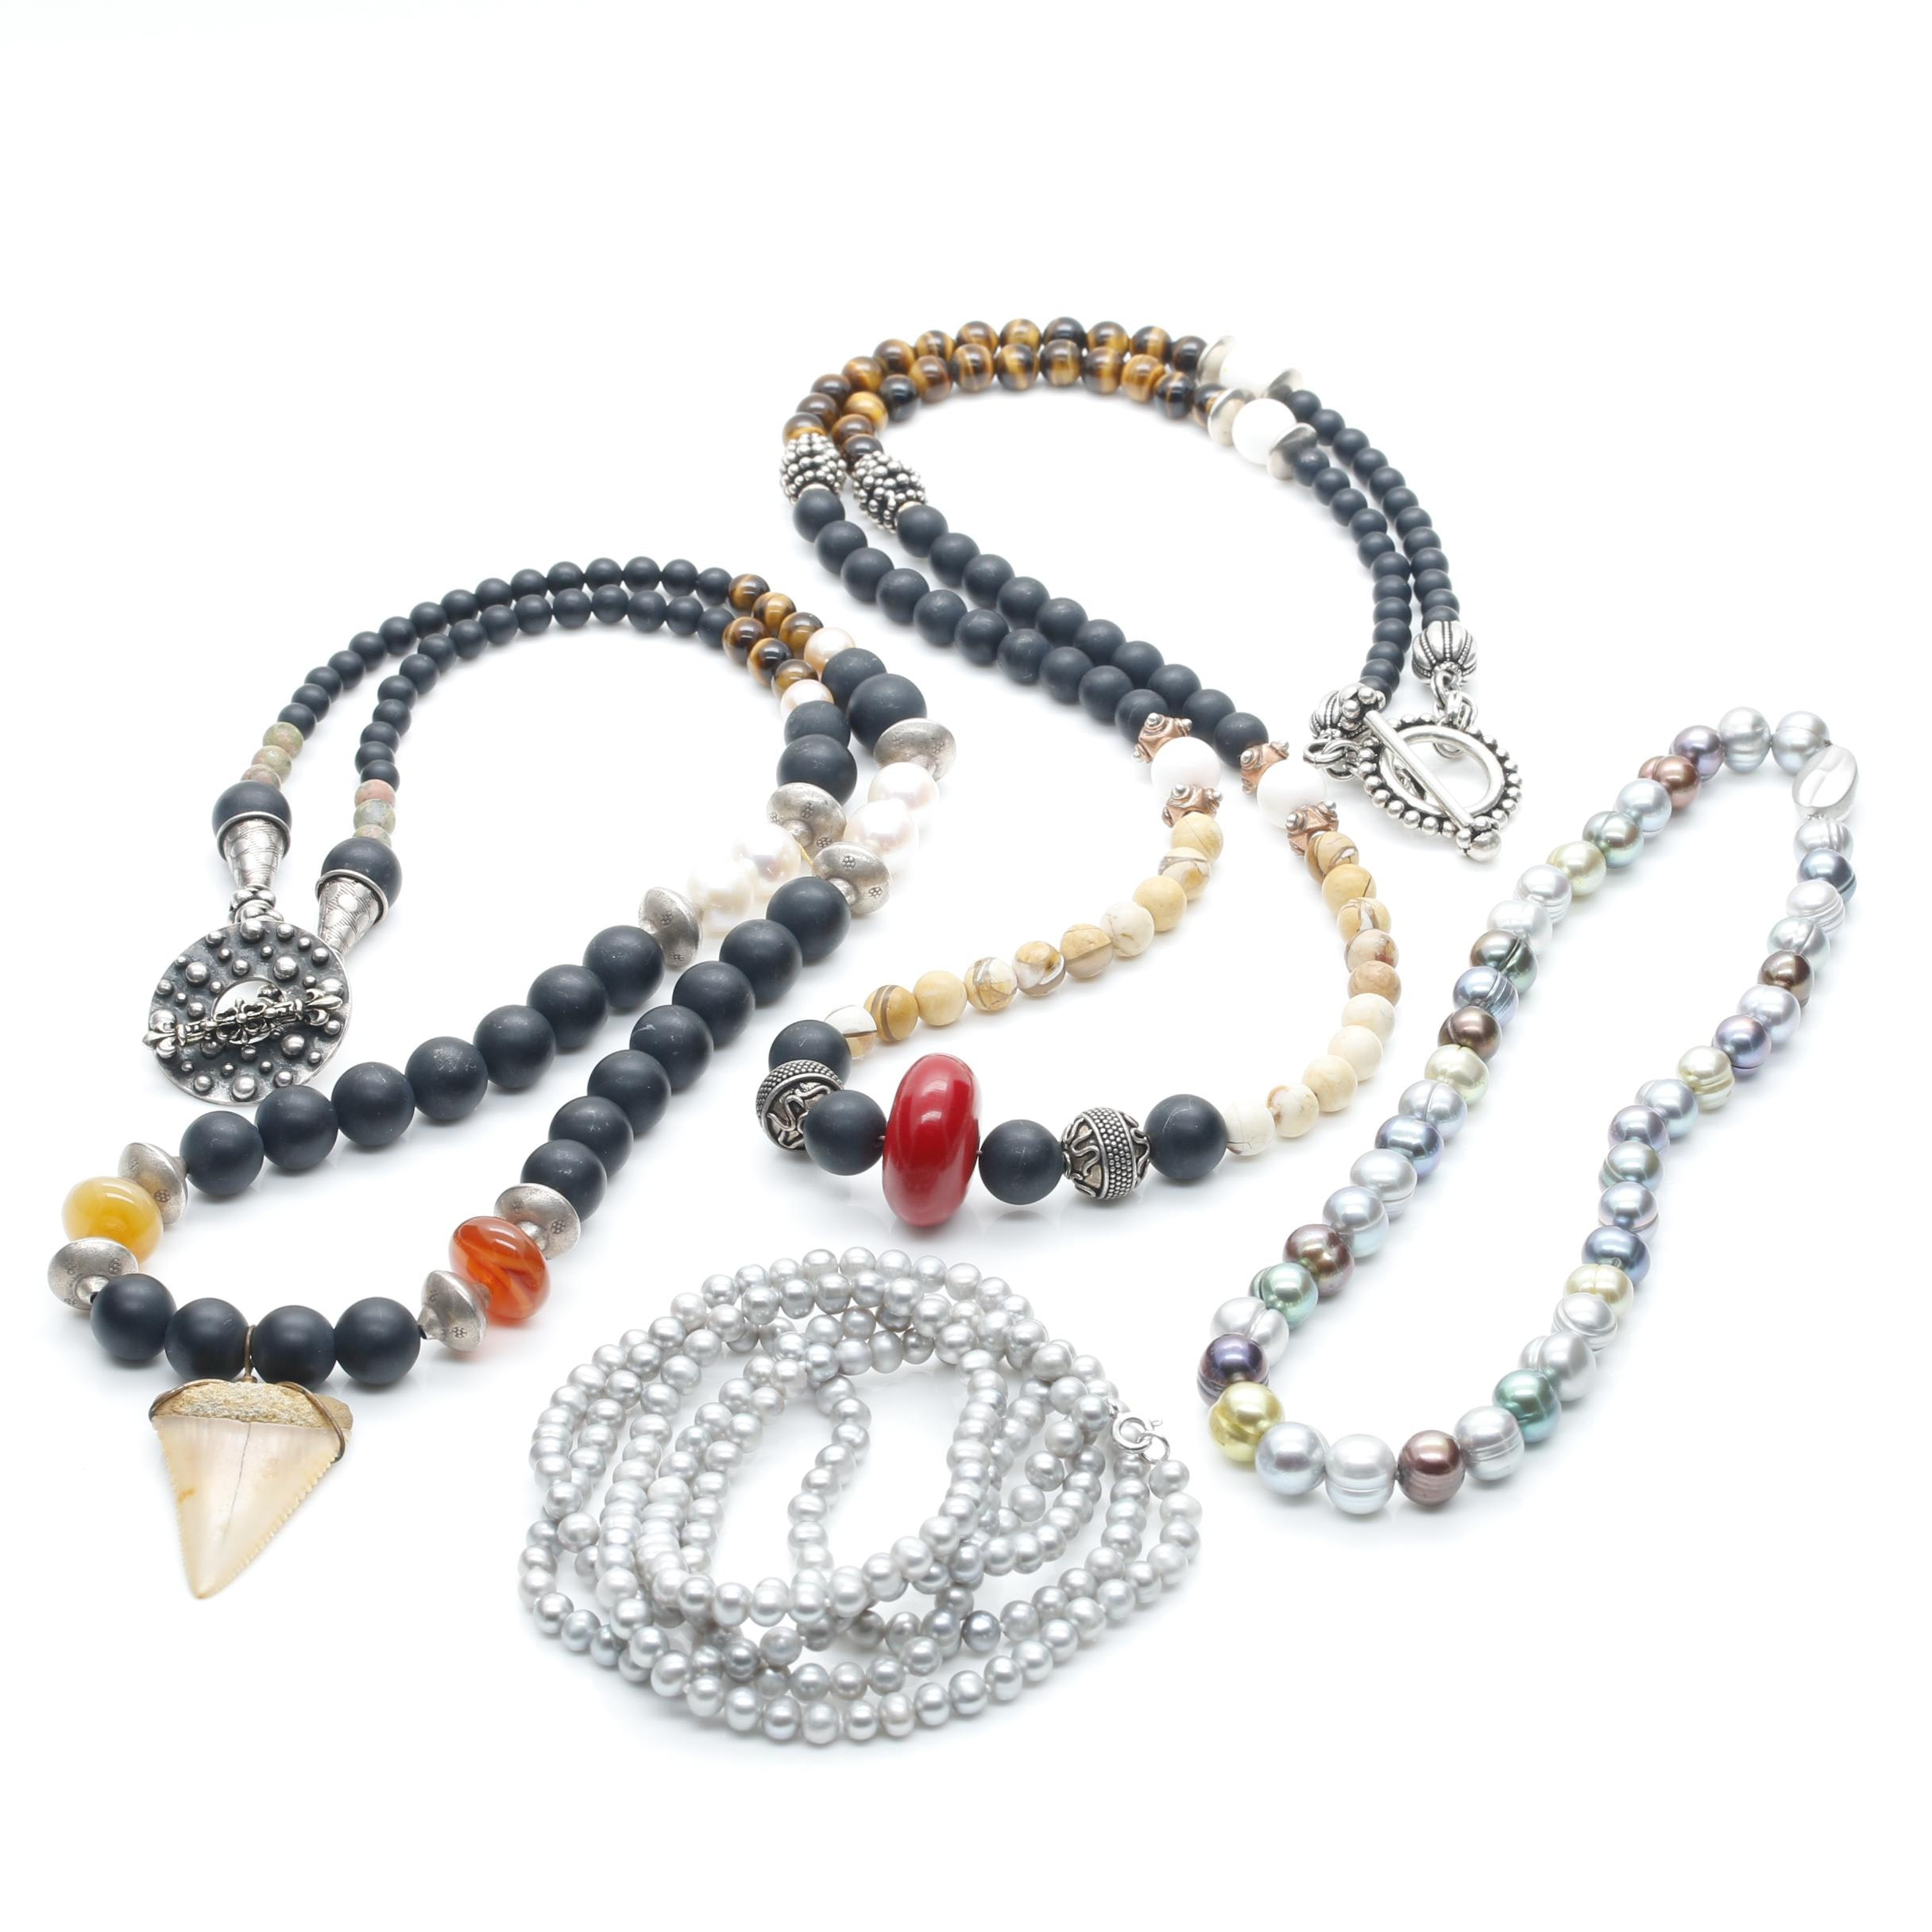 Assortment of Sterling Silver Multi Gemstone and Cultured Pearl Necklaces